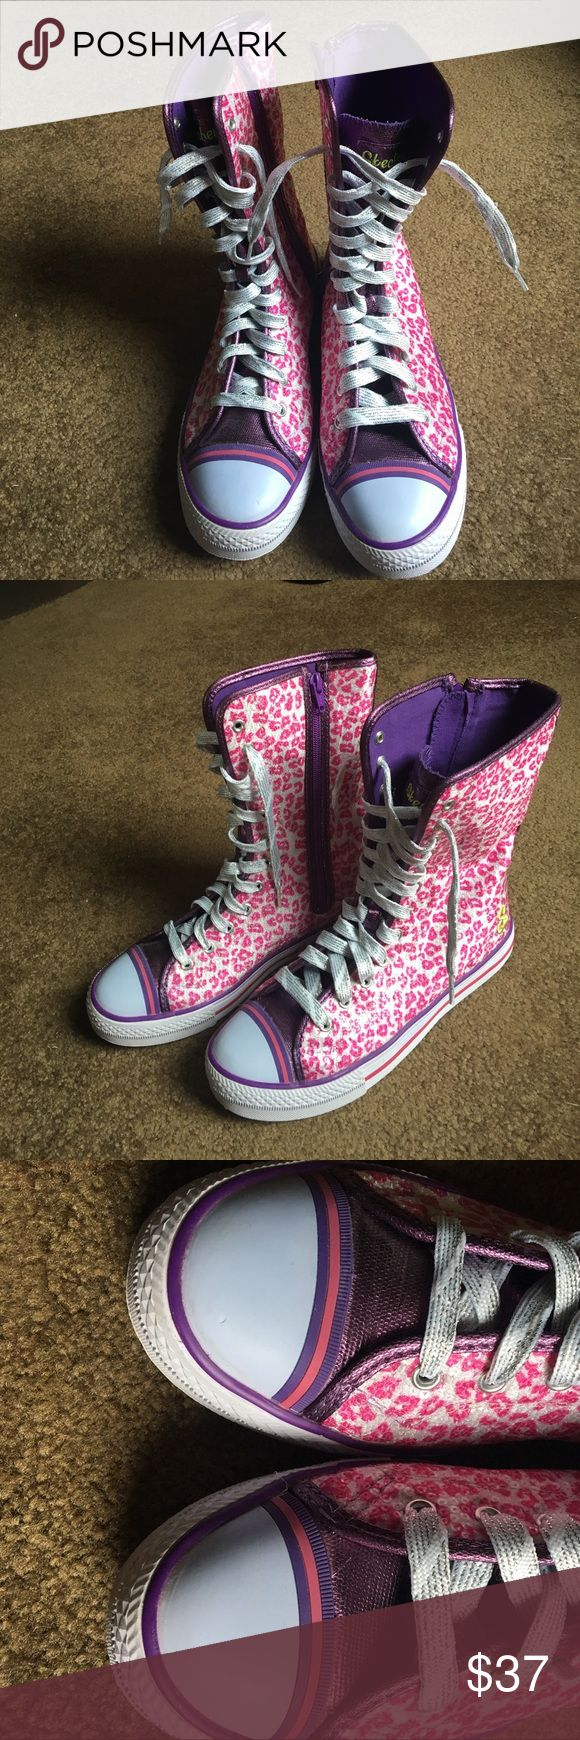 Sketchers sneaker high top leopard print pink Sketchers sneaker high top leopard print pink. Tag says US size 6 but it fits more like a women's size 8 Only worn a few times. Has minor marks of wear.( refer to pictures before buying) Skechers Shoes Athletic Shoes